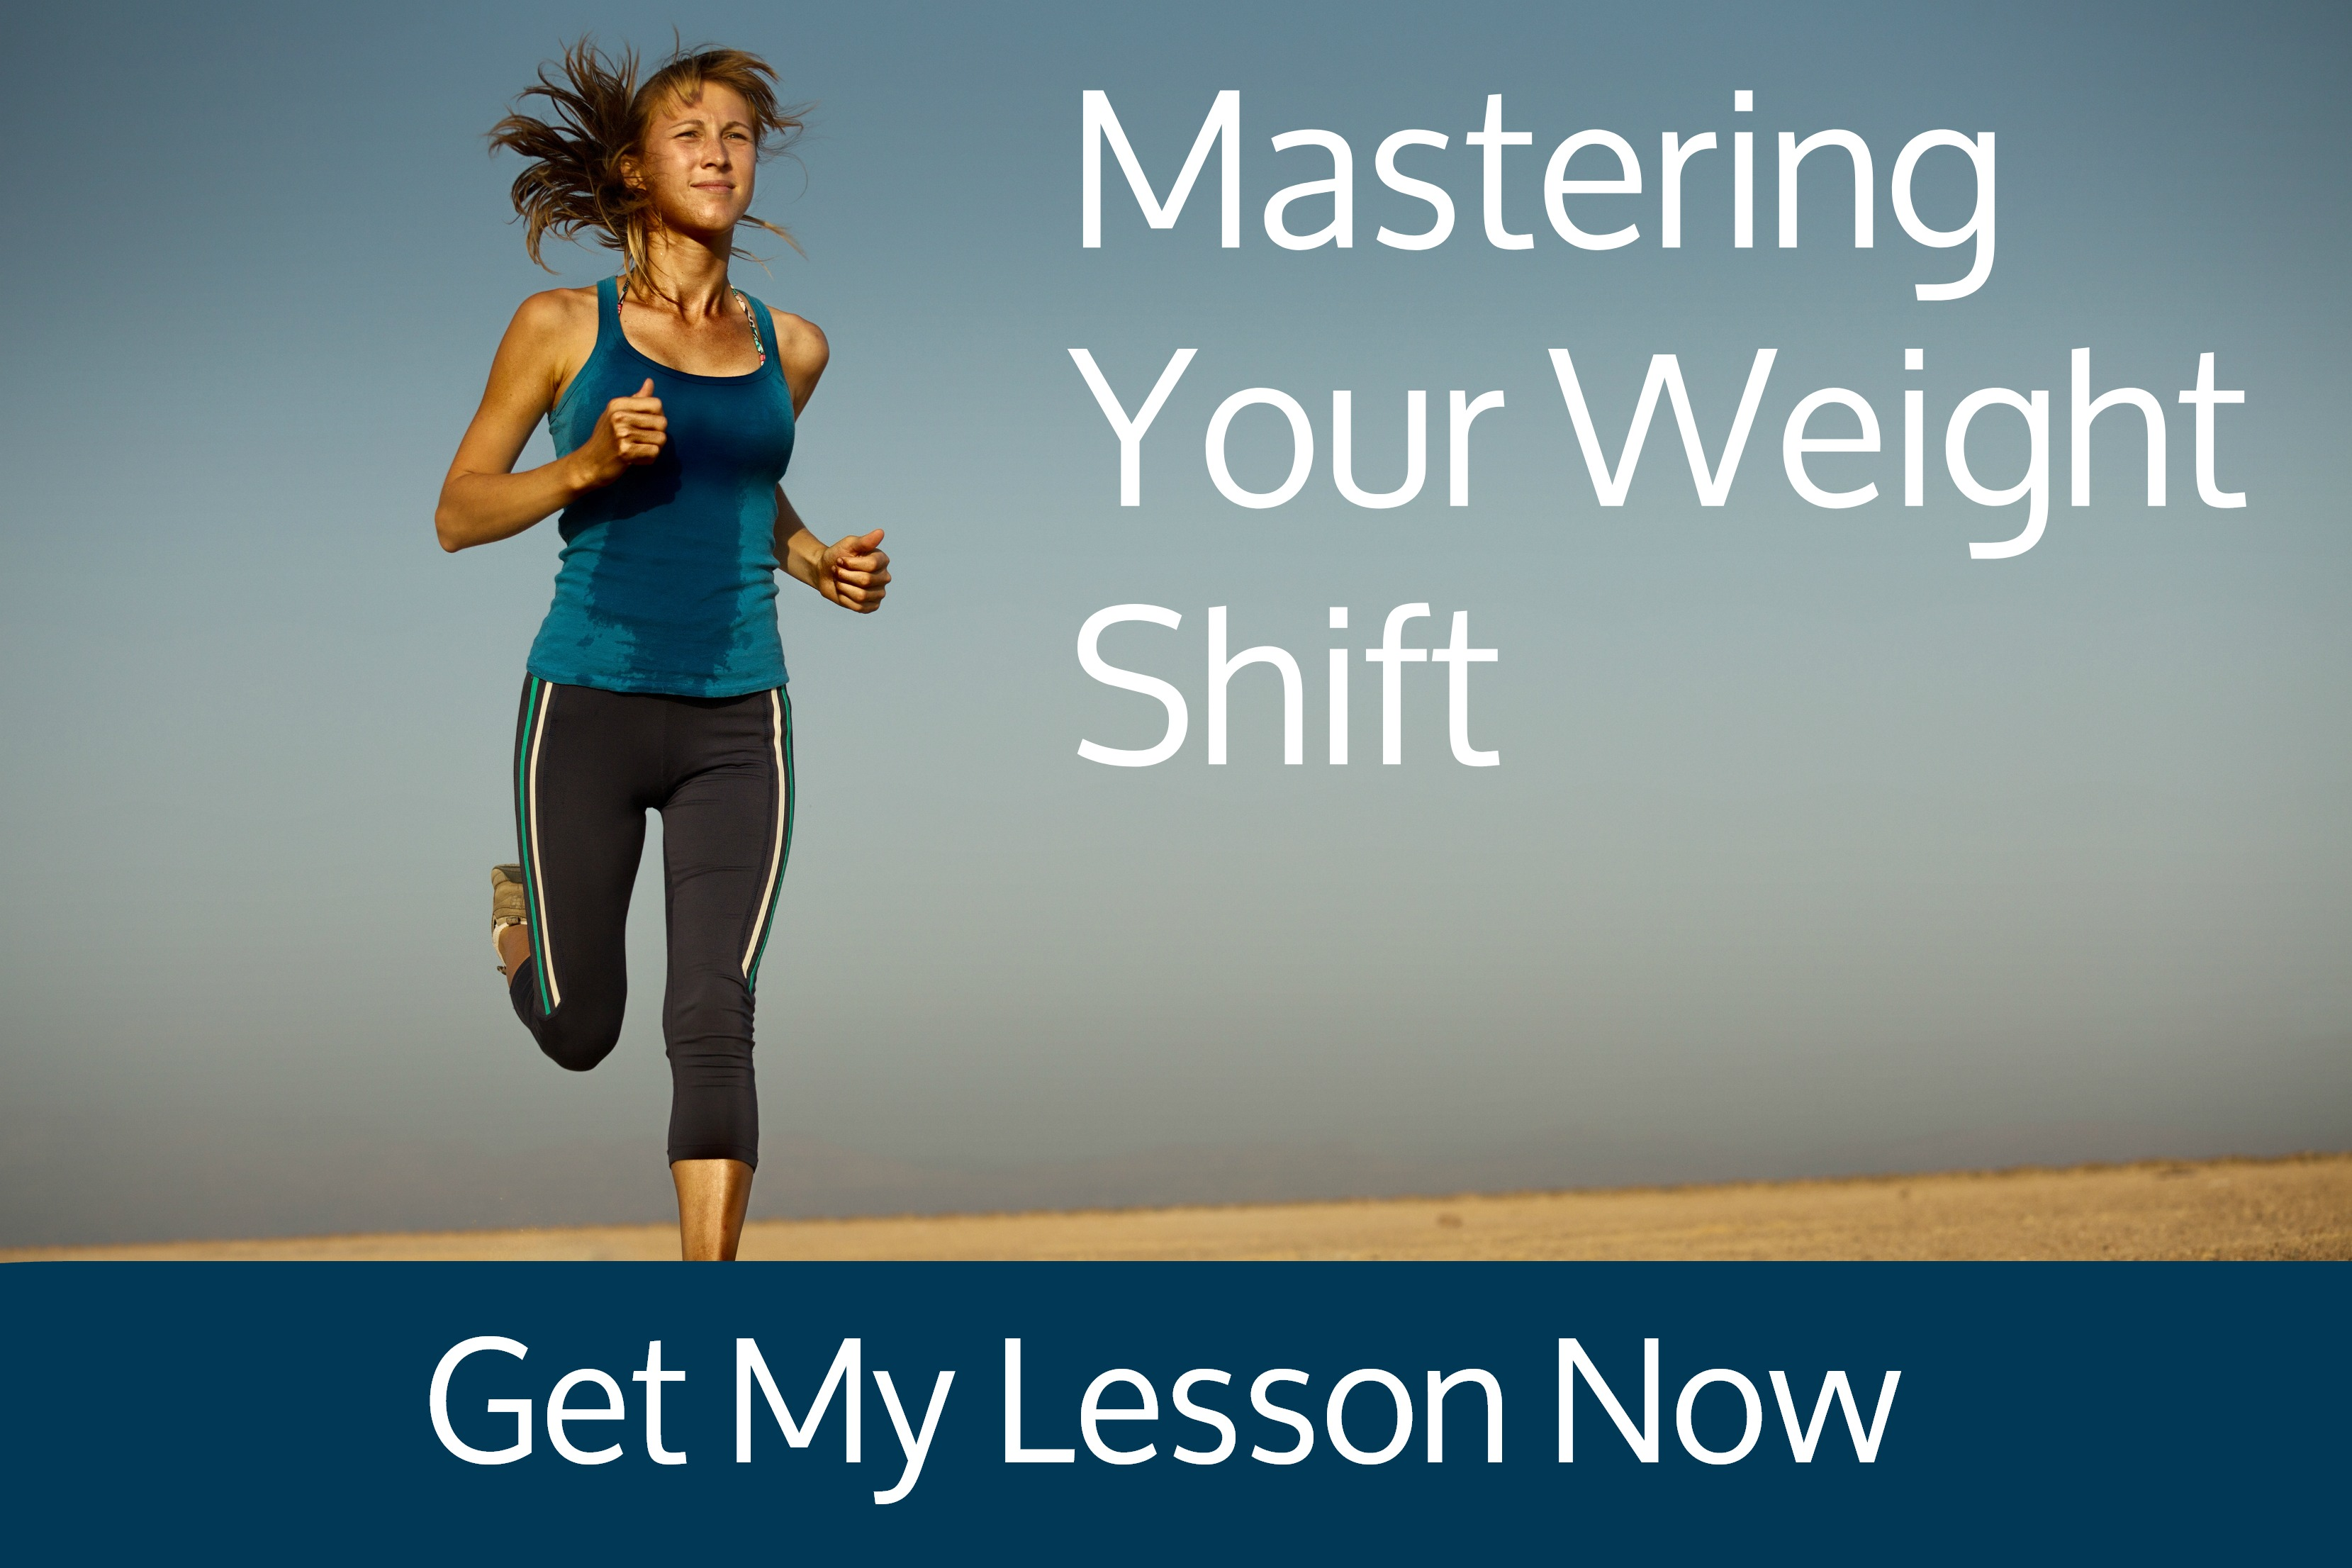 Click here to get Mastering Your Weight Shift!